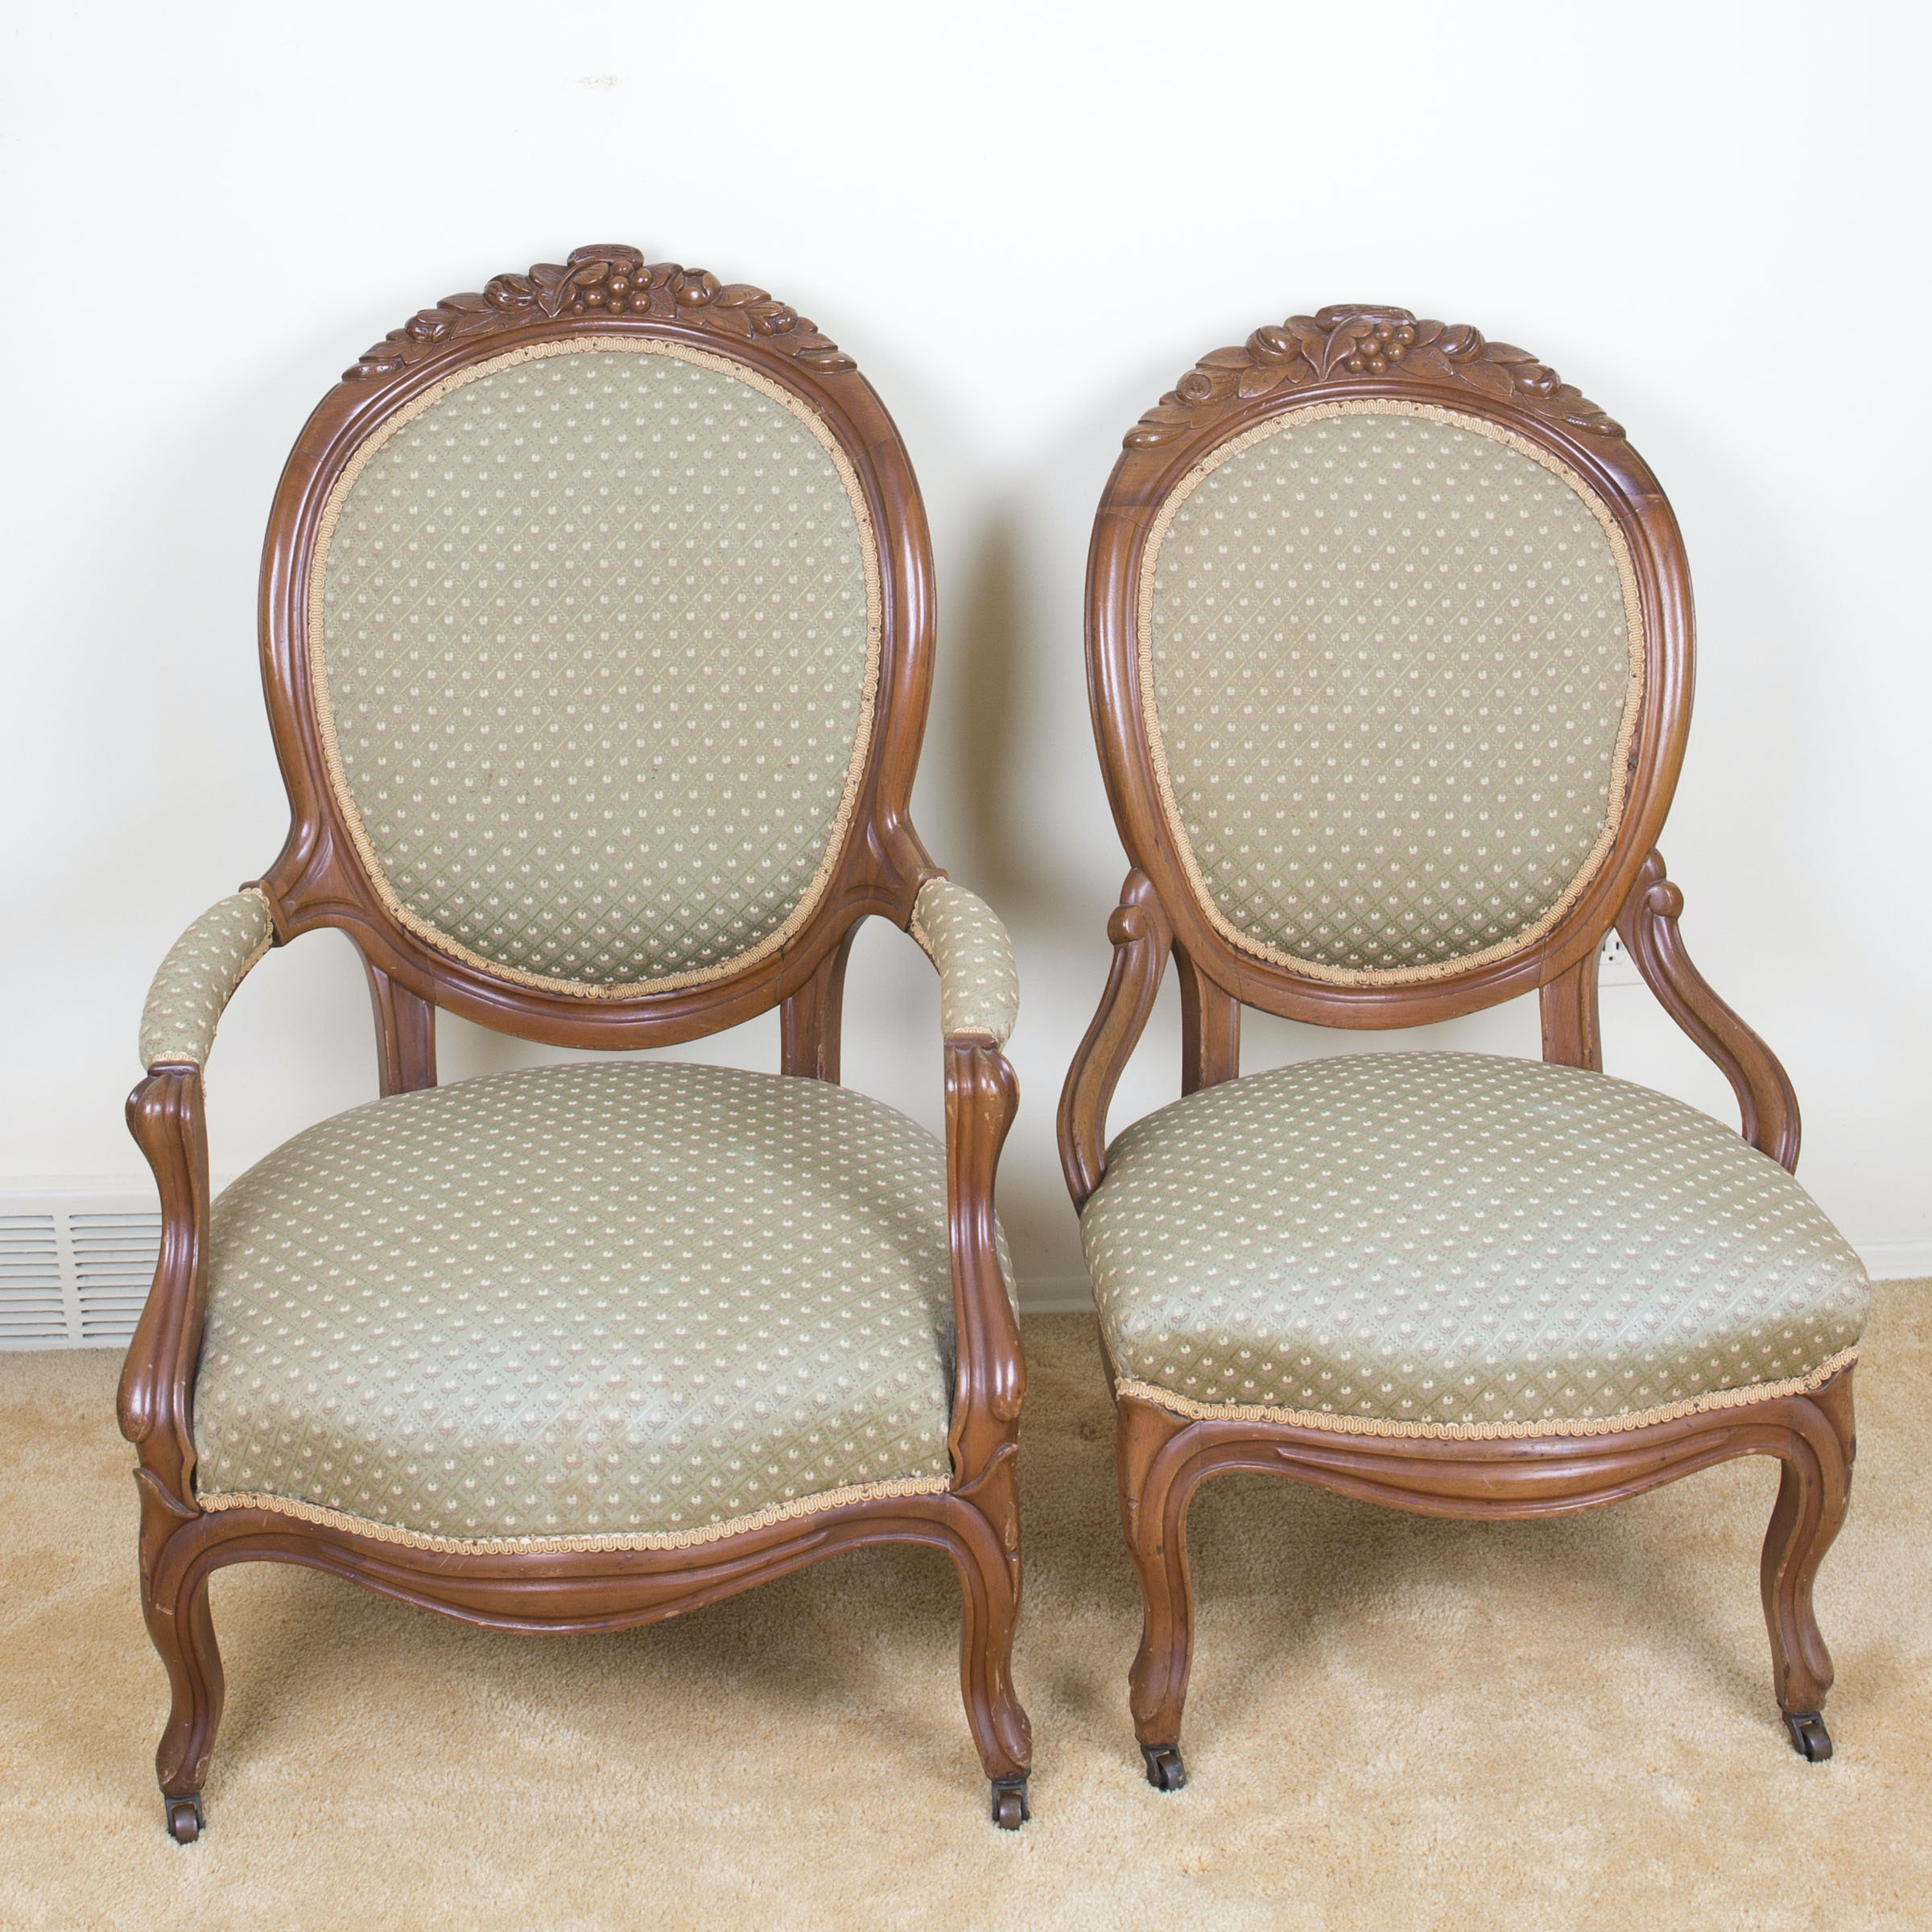 Pair of Victorian-Style Balloon Back Chairs